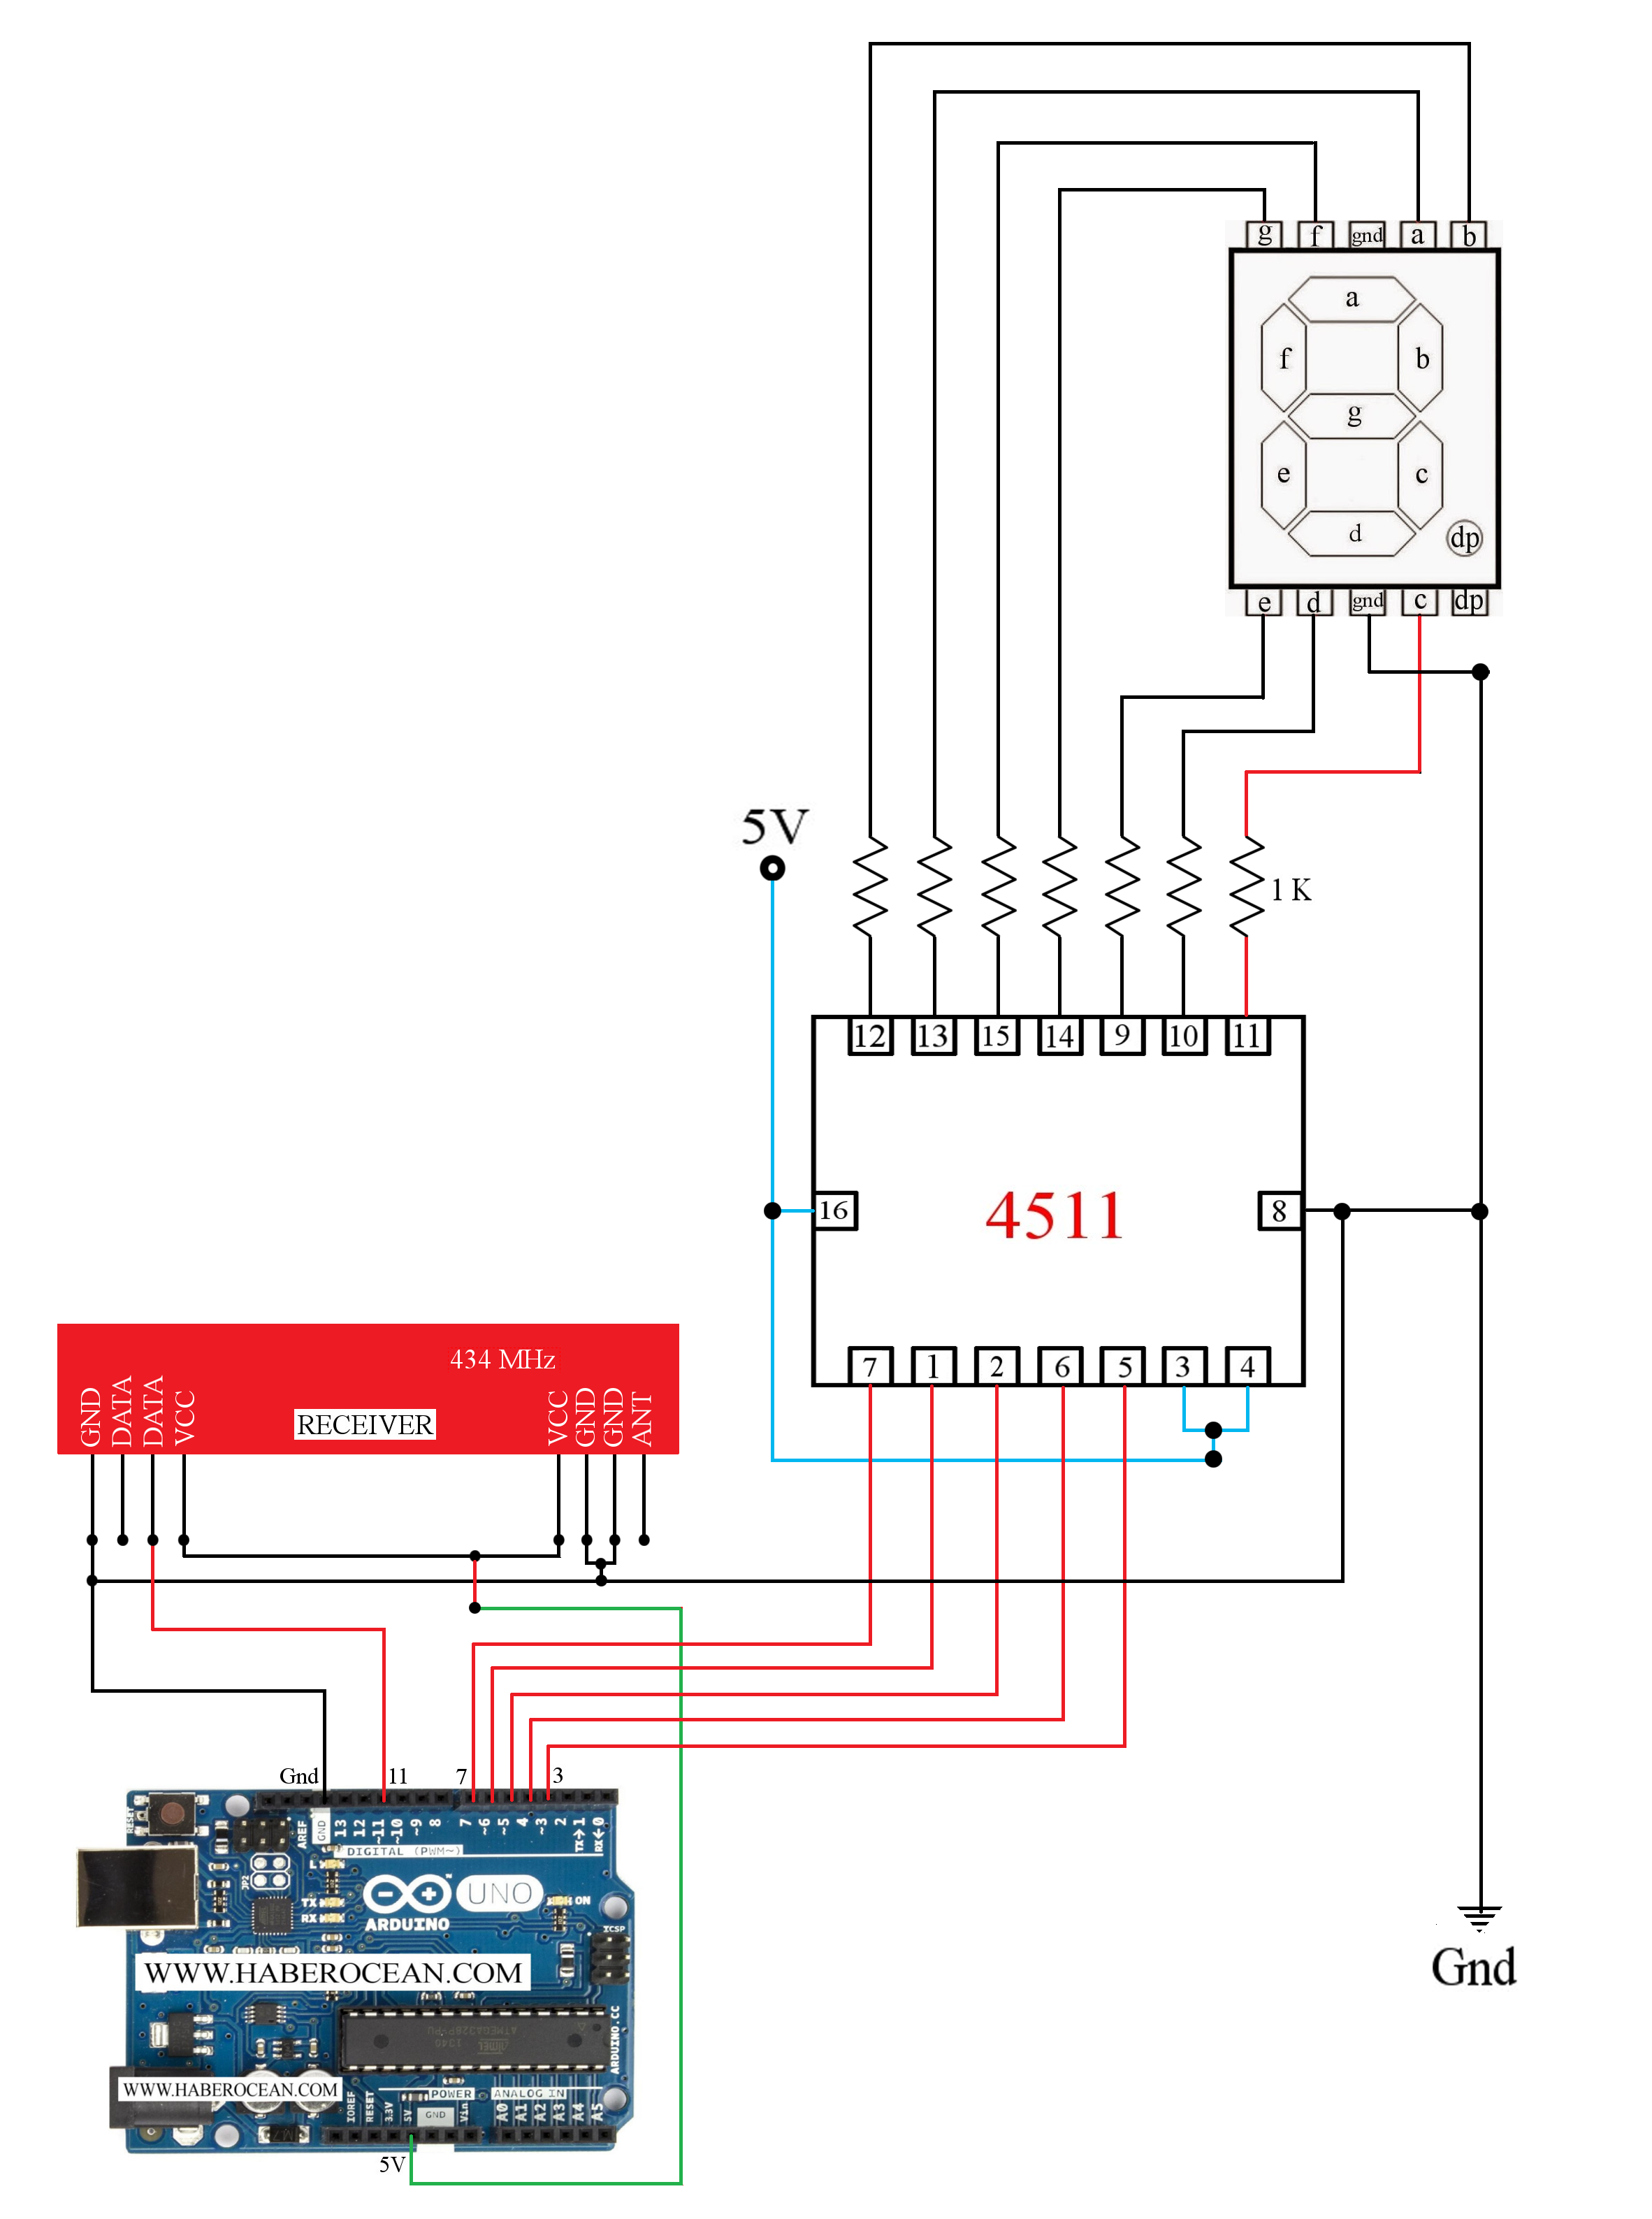 Pin By Febin Antony On My Funny Electronics In 2018 Pinterest Rf Module Circuit Diagram Change The Number Displayed A Seven Segment Display Using 43392 Mhz And